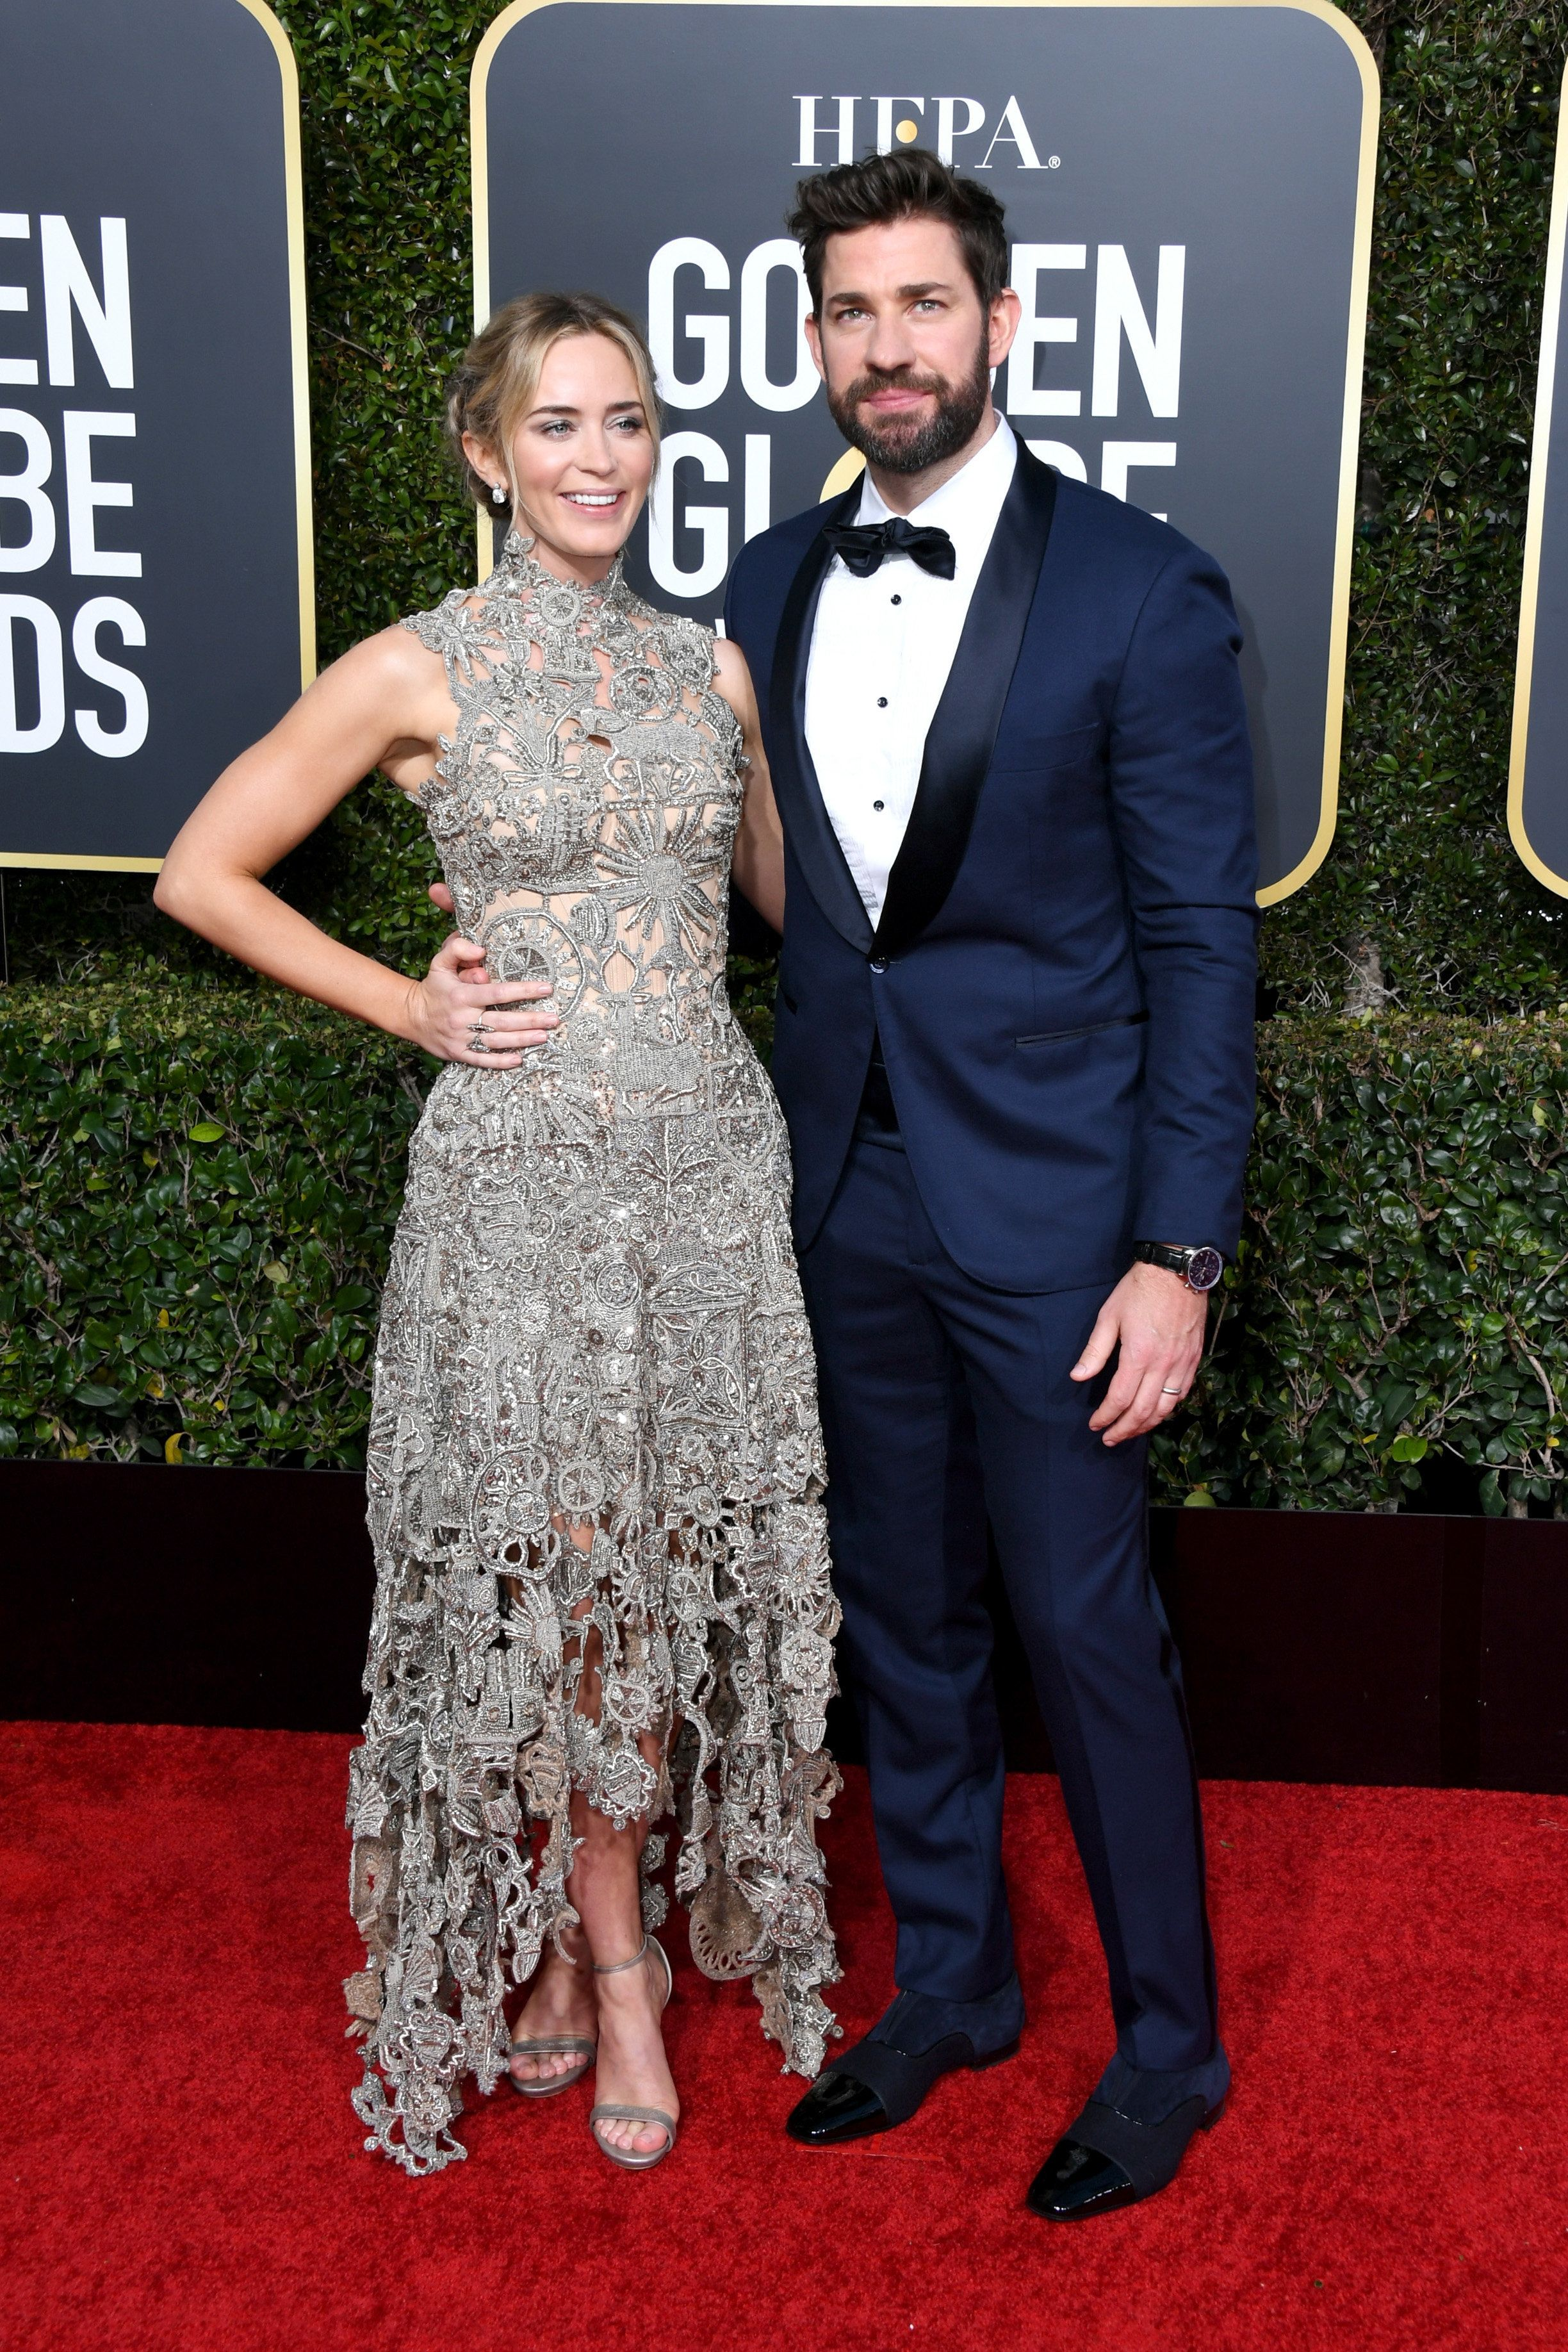 BEVERLY HILLS, CA - JANUARY 06:  Emily Blunt and John Krasinski attend the 76th Annual Golden Globe Awards at The Beverly Hilton Hotel on January 6, 2019 in Beverly Hills, California.  (Photo by Jon Kopaloff/Getty Images)